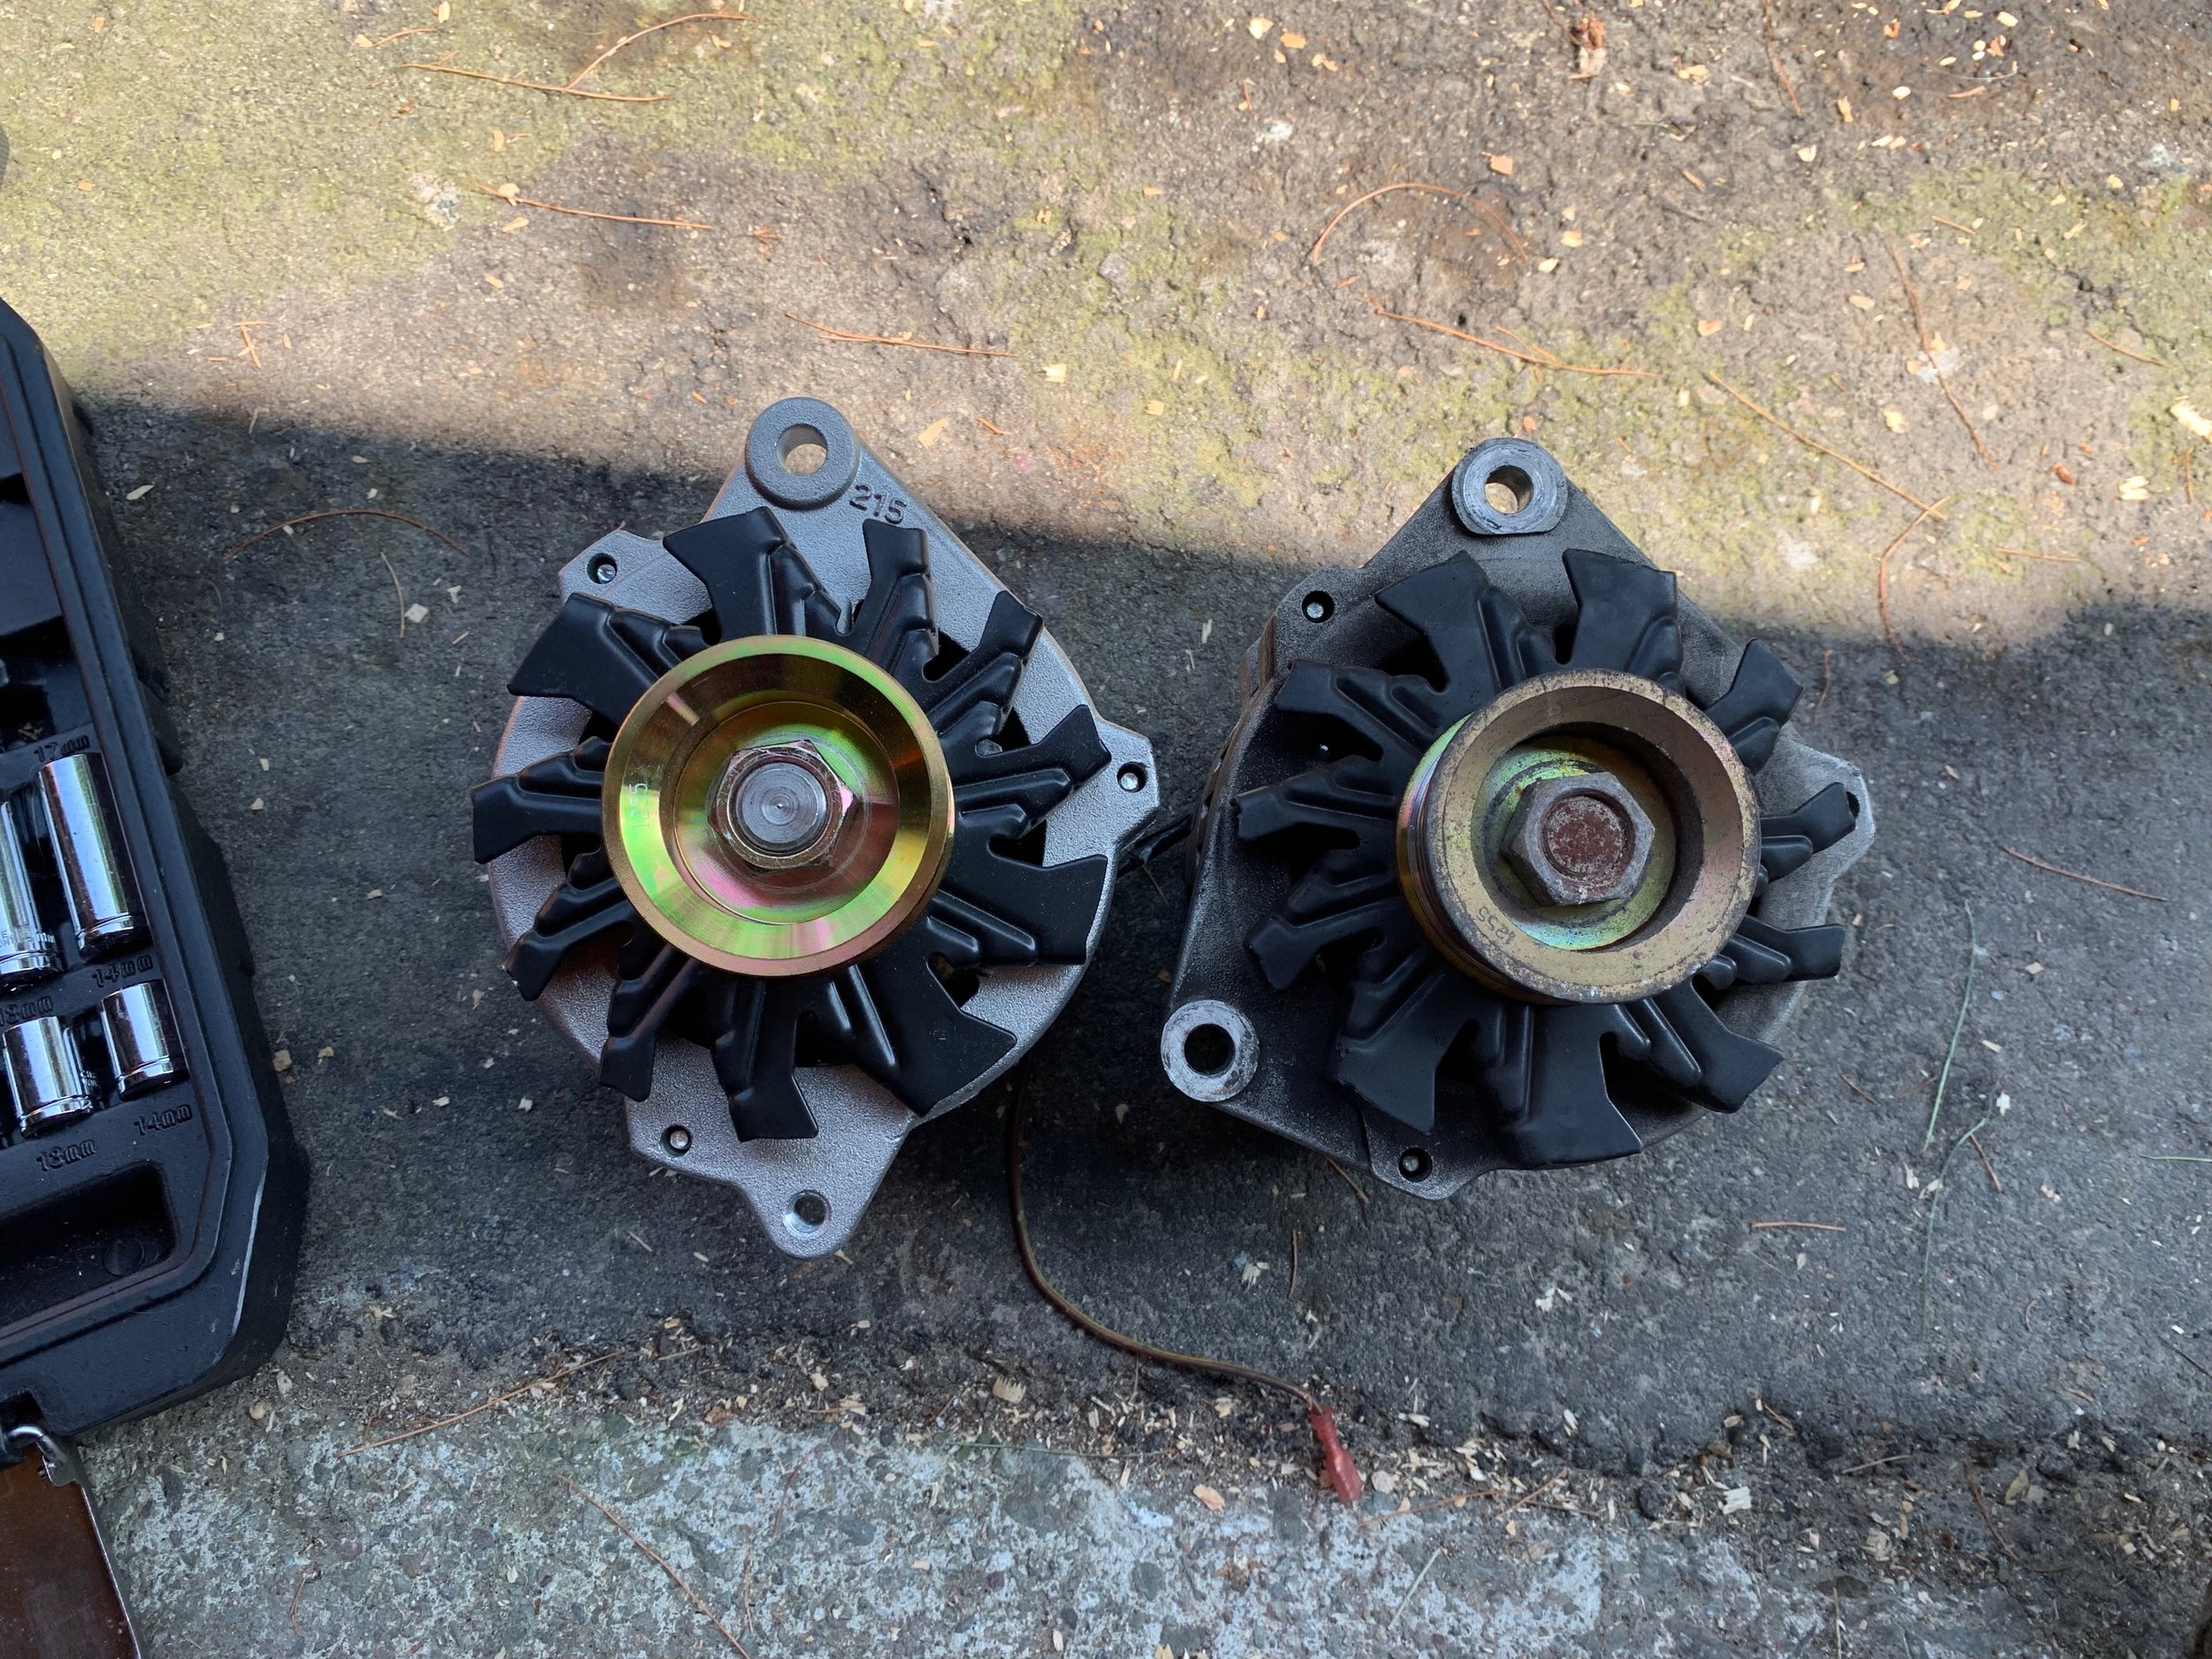 The wrong alternator. Notice the position an size of the bottom hole doesn't match the correct alternator.